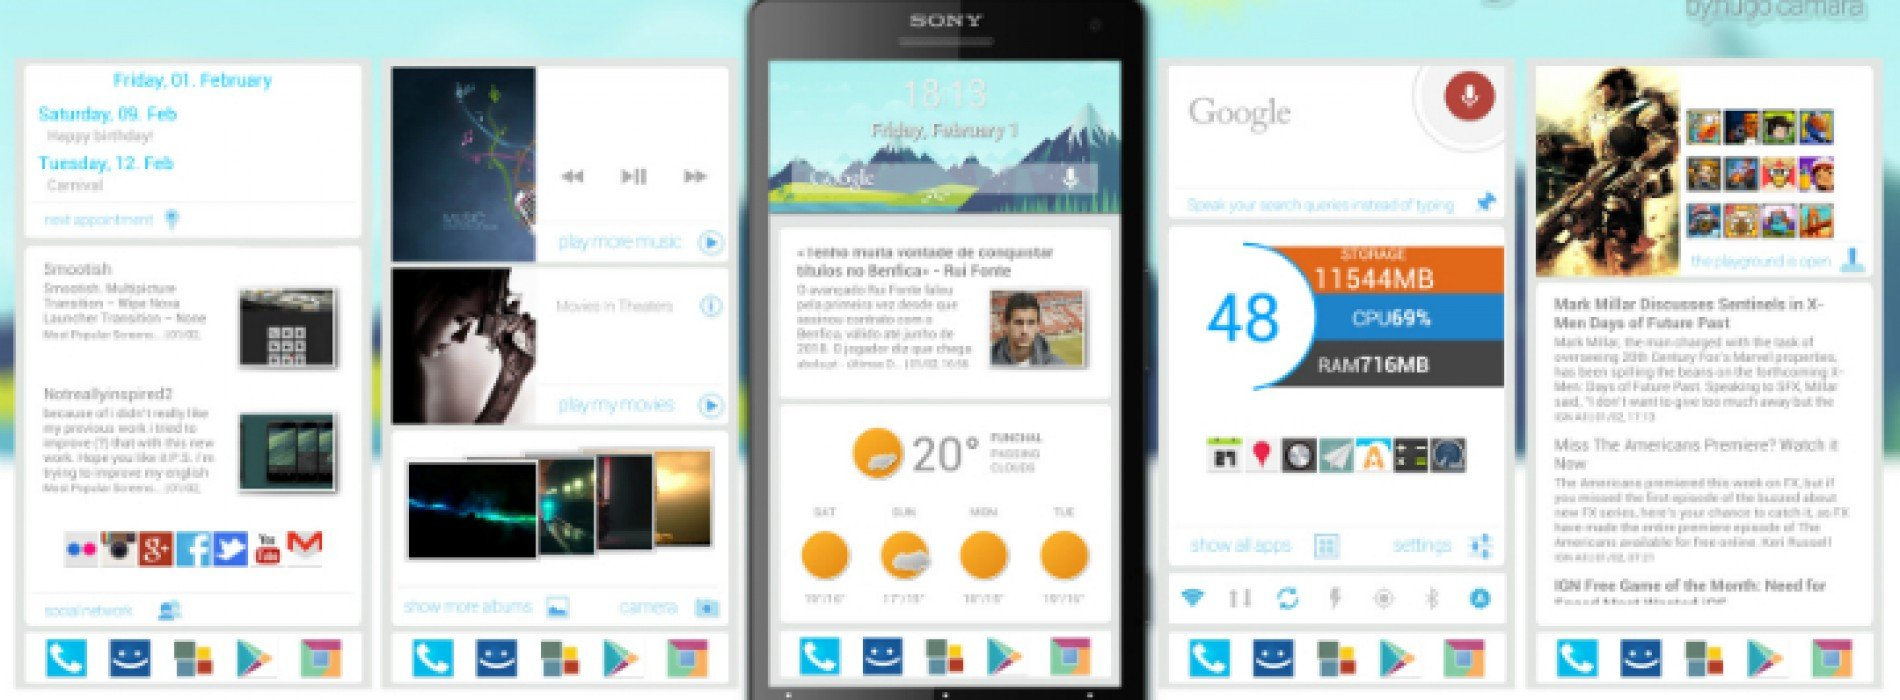 Get this look for your Android smartphone: Google Now UI